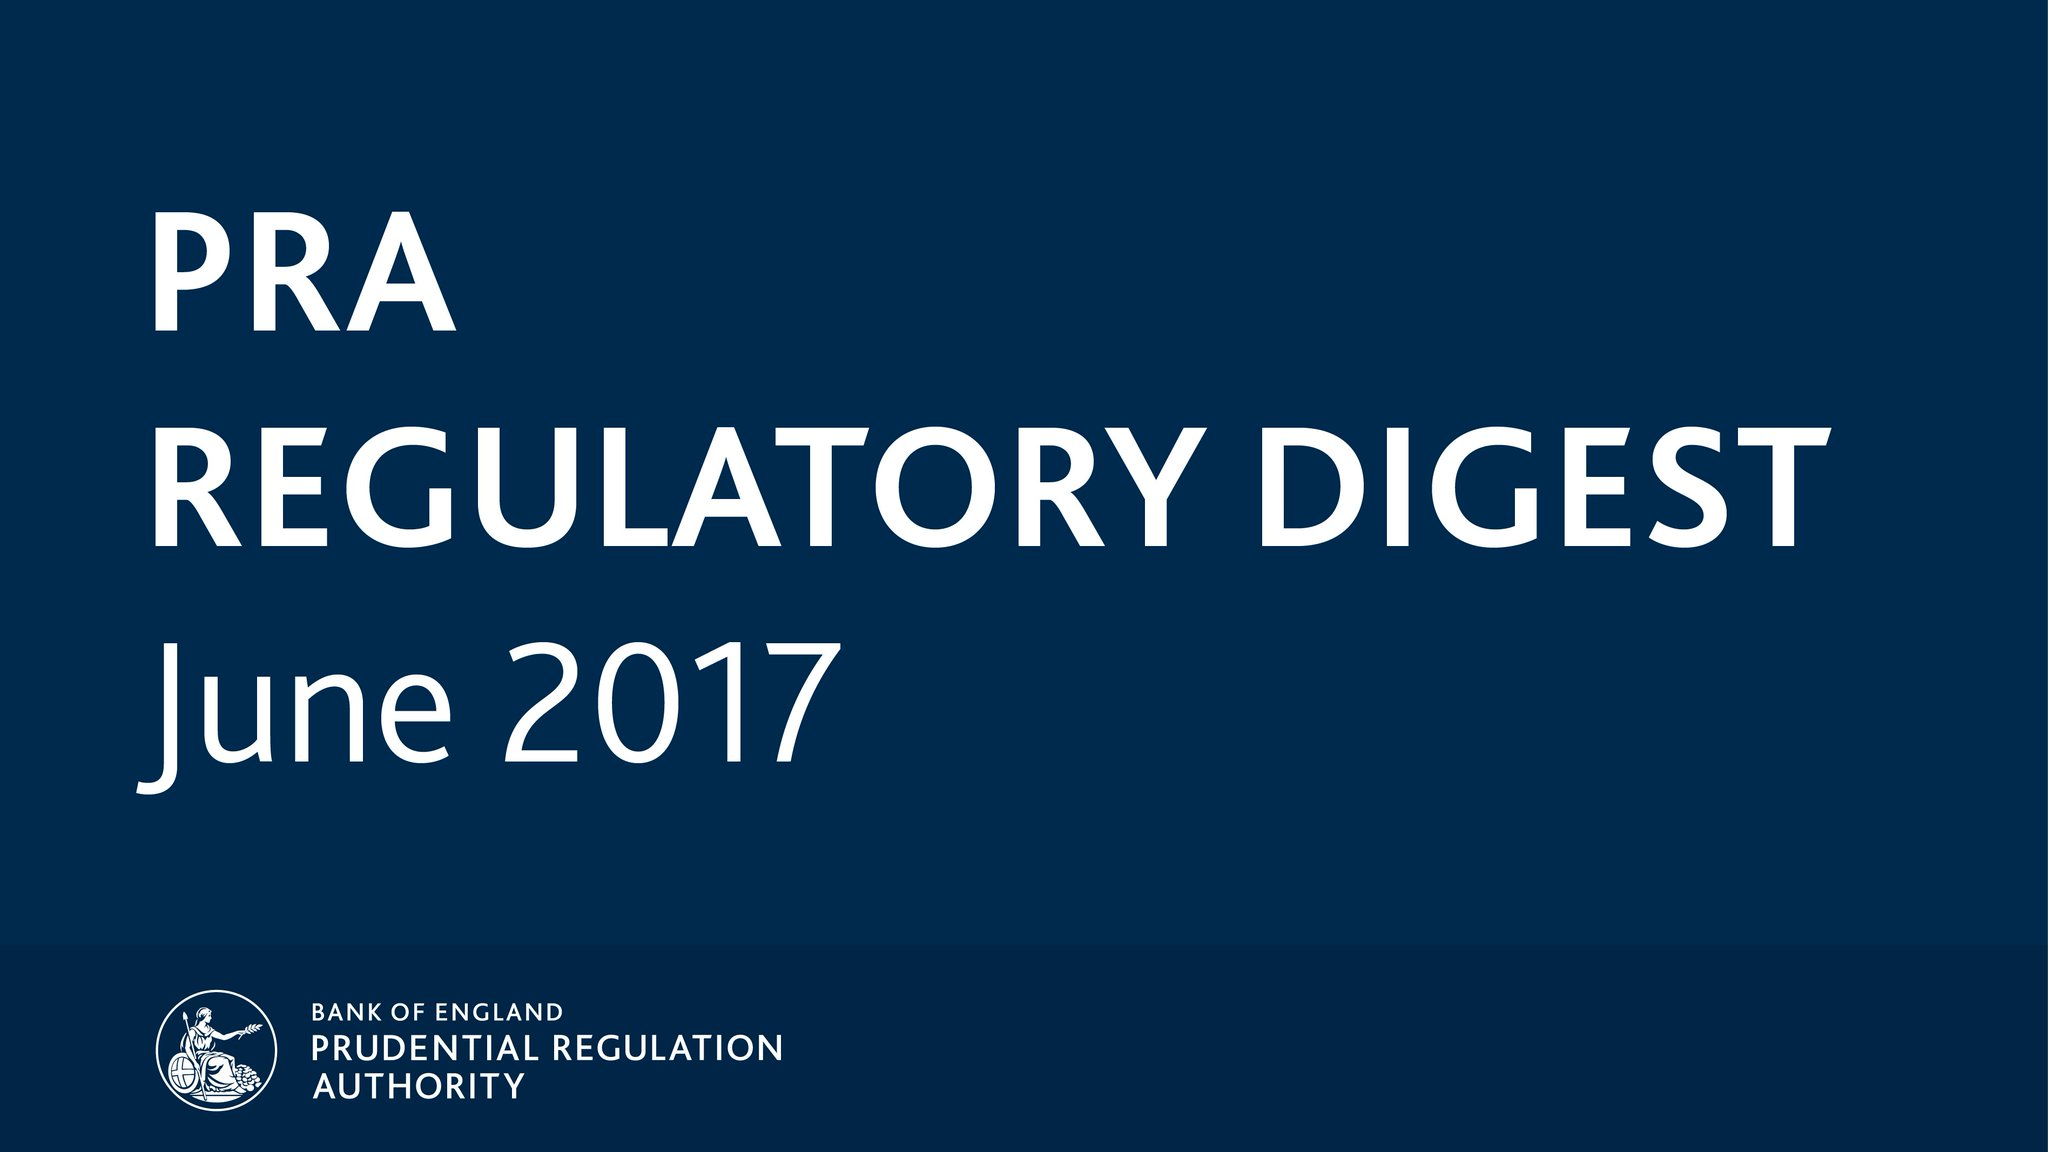 Catch up on June's key regulatory news and publications with the #PRARegulatoryDigest: https://t.co/wgV0Al8Mo6 https://t.co/kCq6fg8zkJ